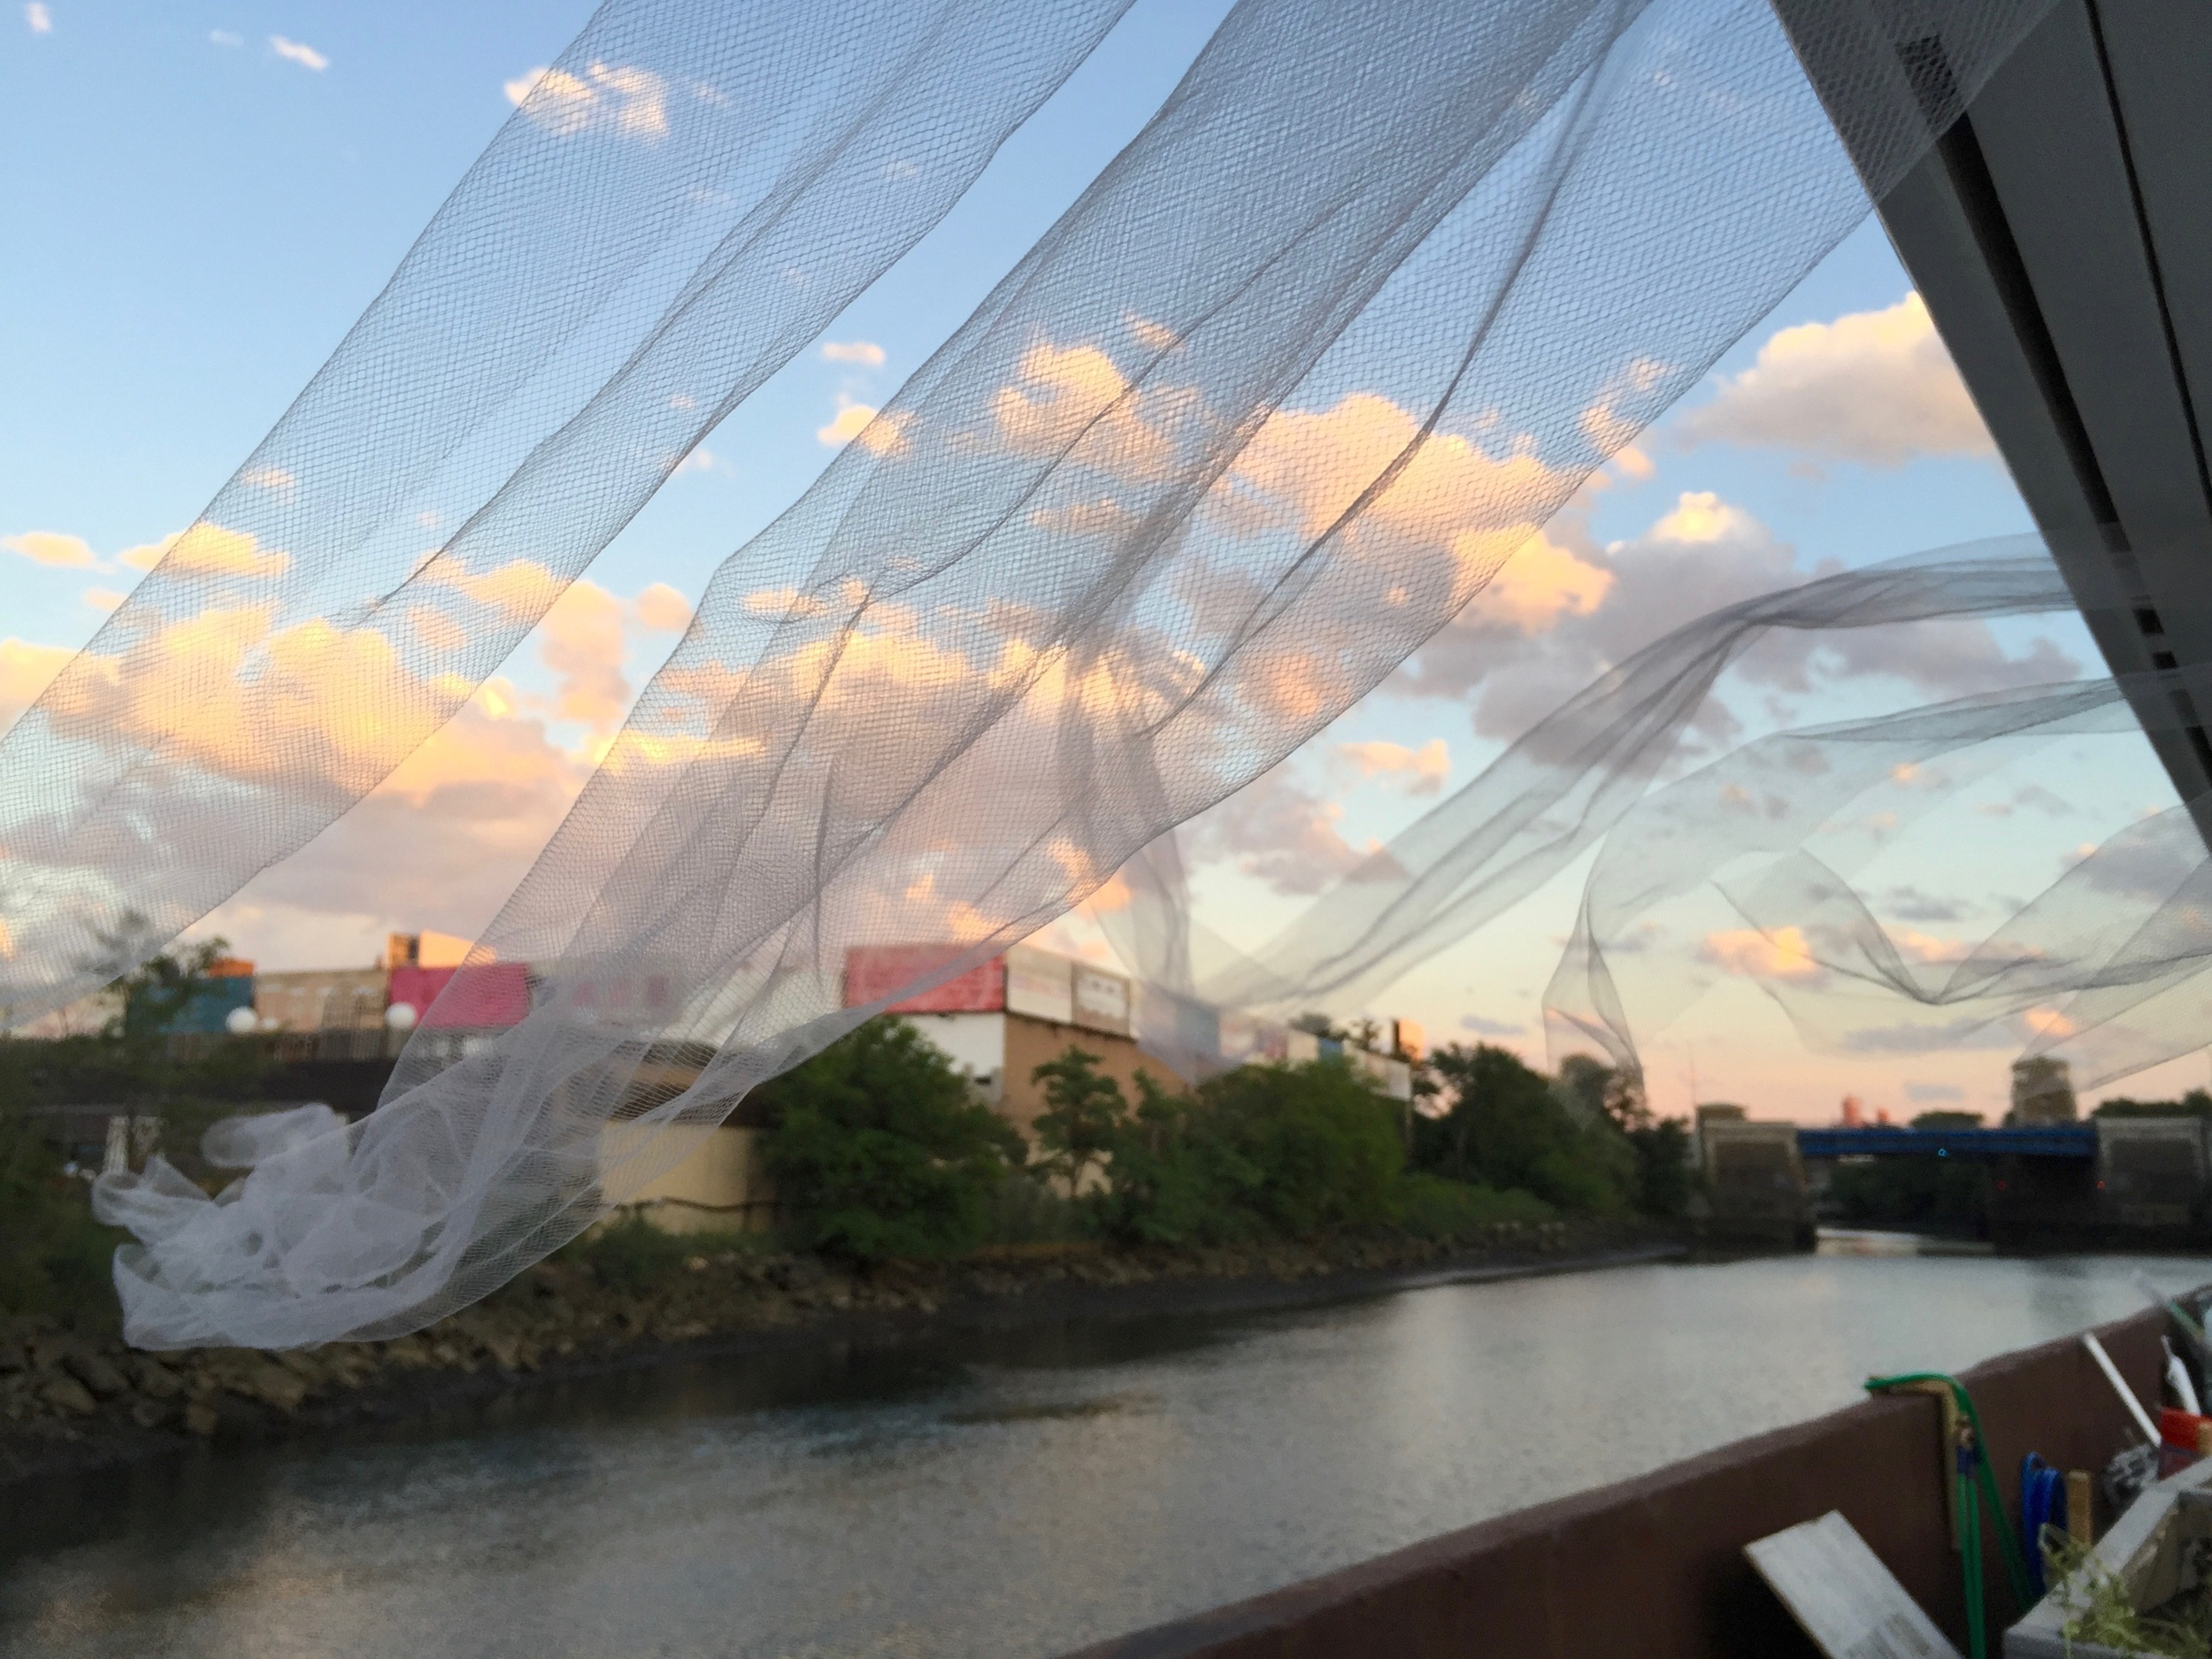 Fabric installation and the Bronx River.